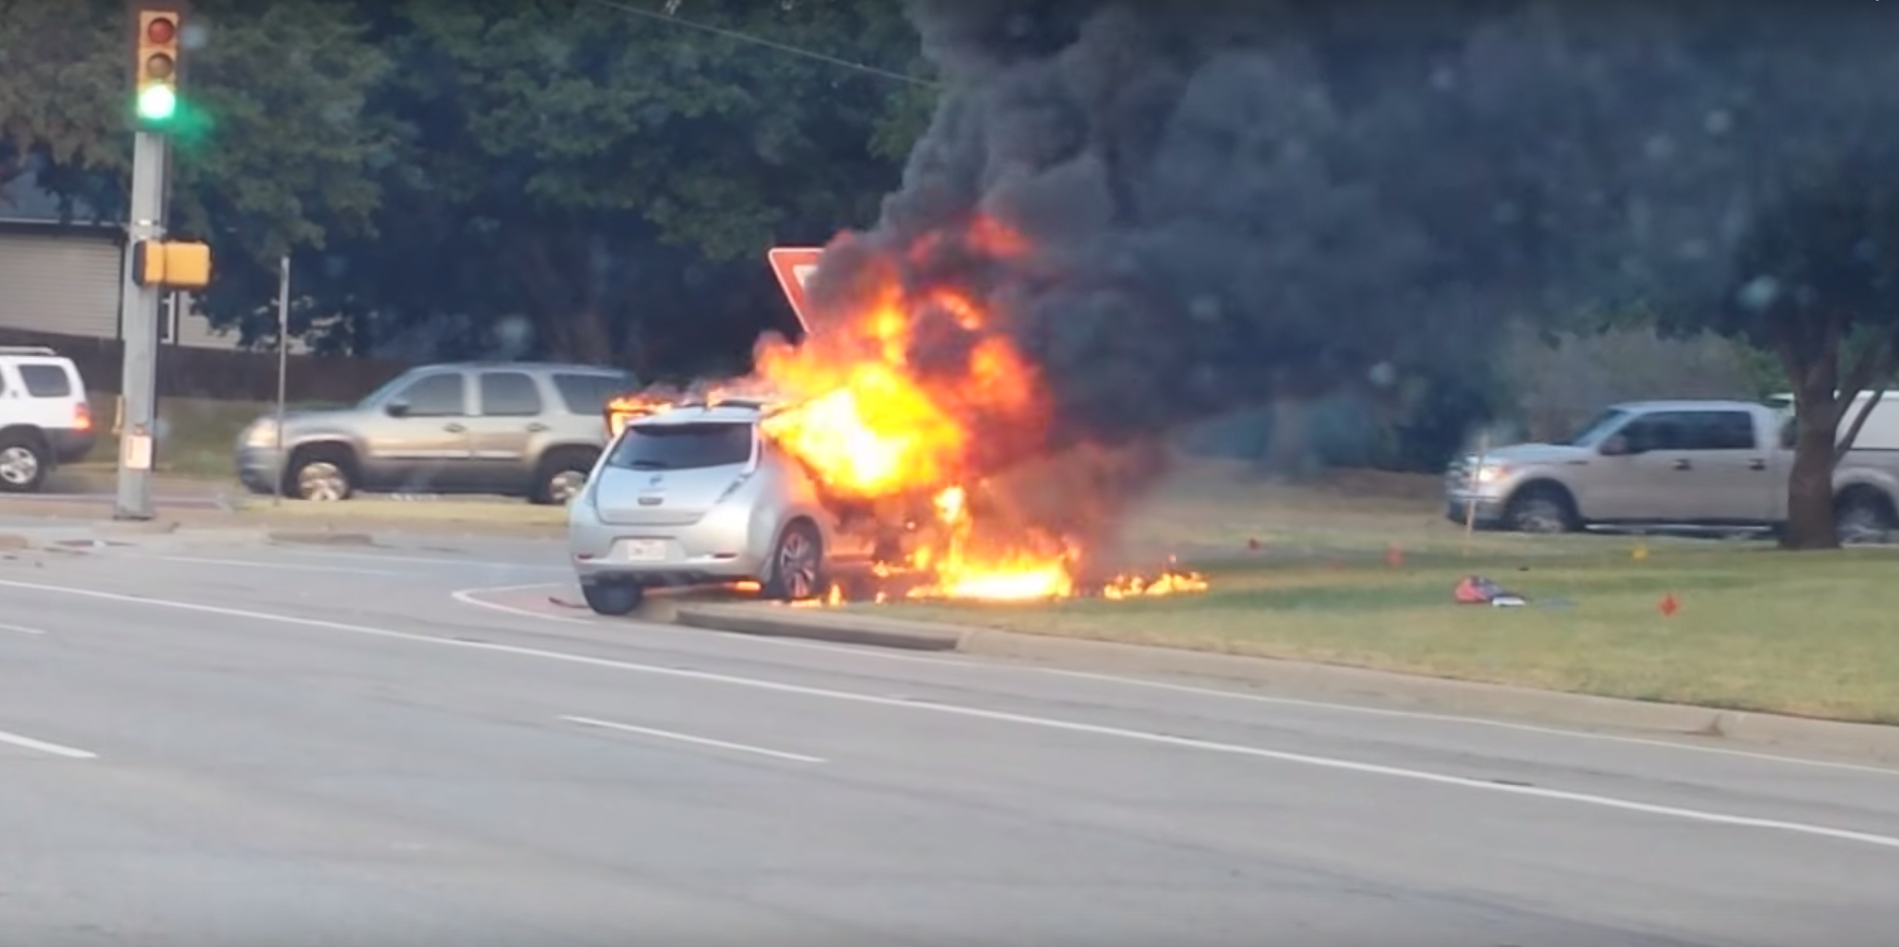 A Nissan LEAF caught fire in North Texas - cause currently